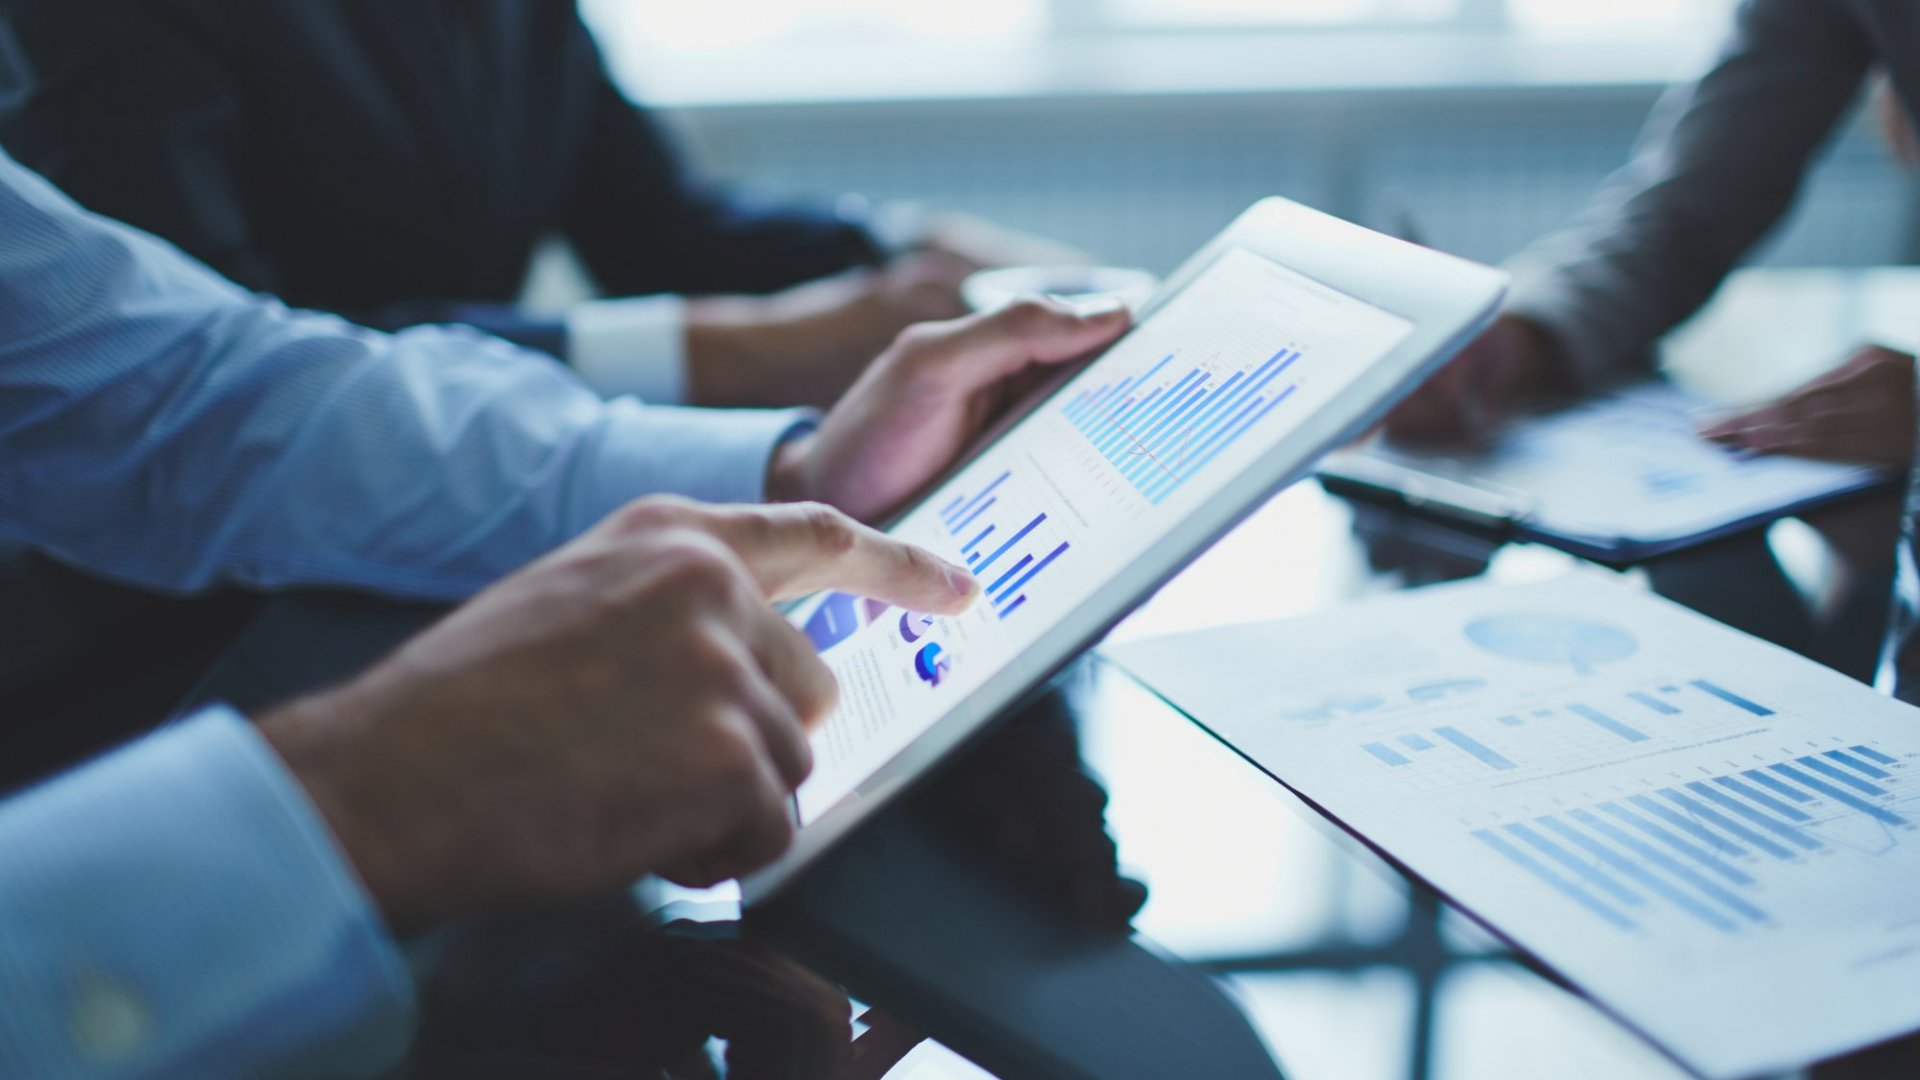 4 Steps Every SMB CEO Needs to Take To Up their Game in Finance